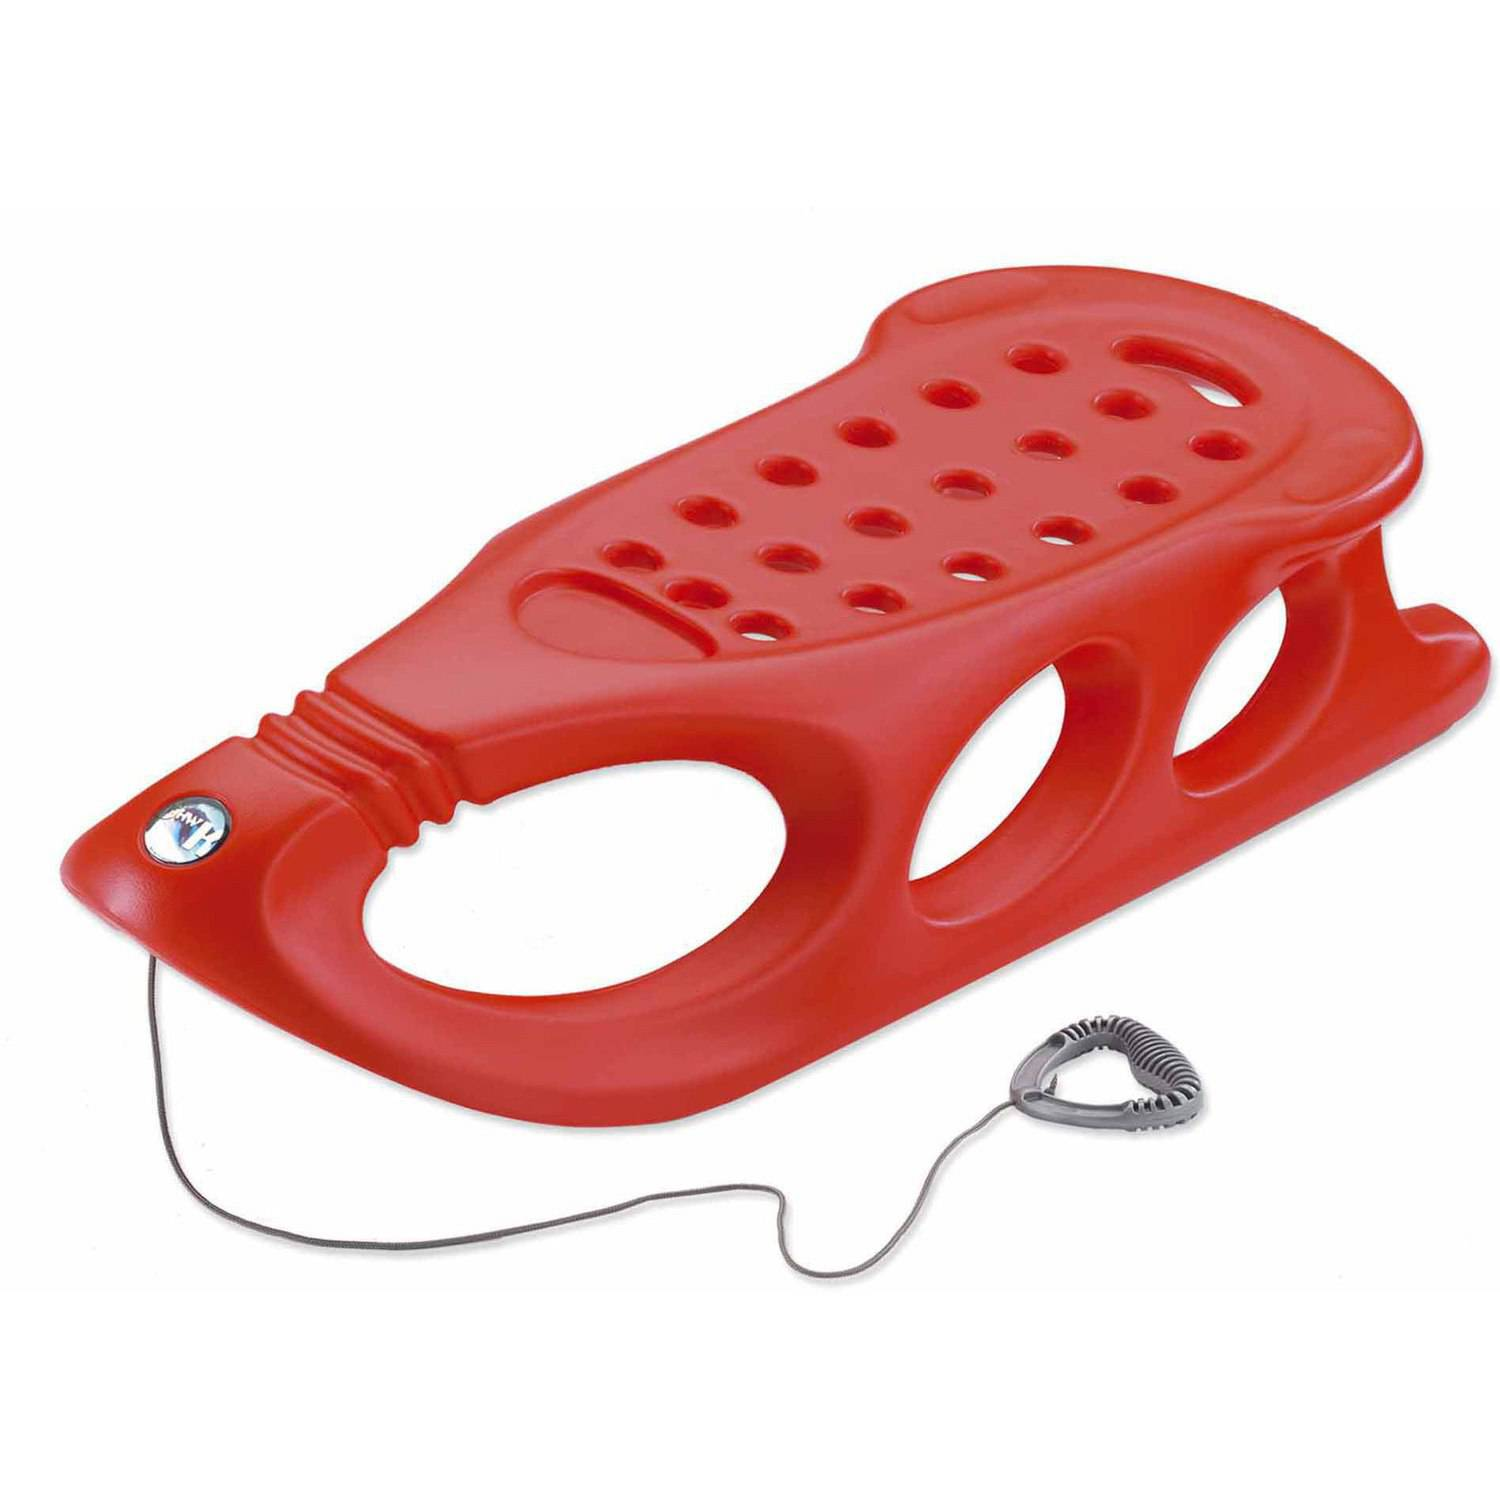 Snow Shuttle Sled, Red